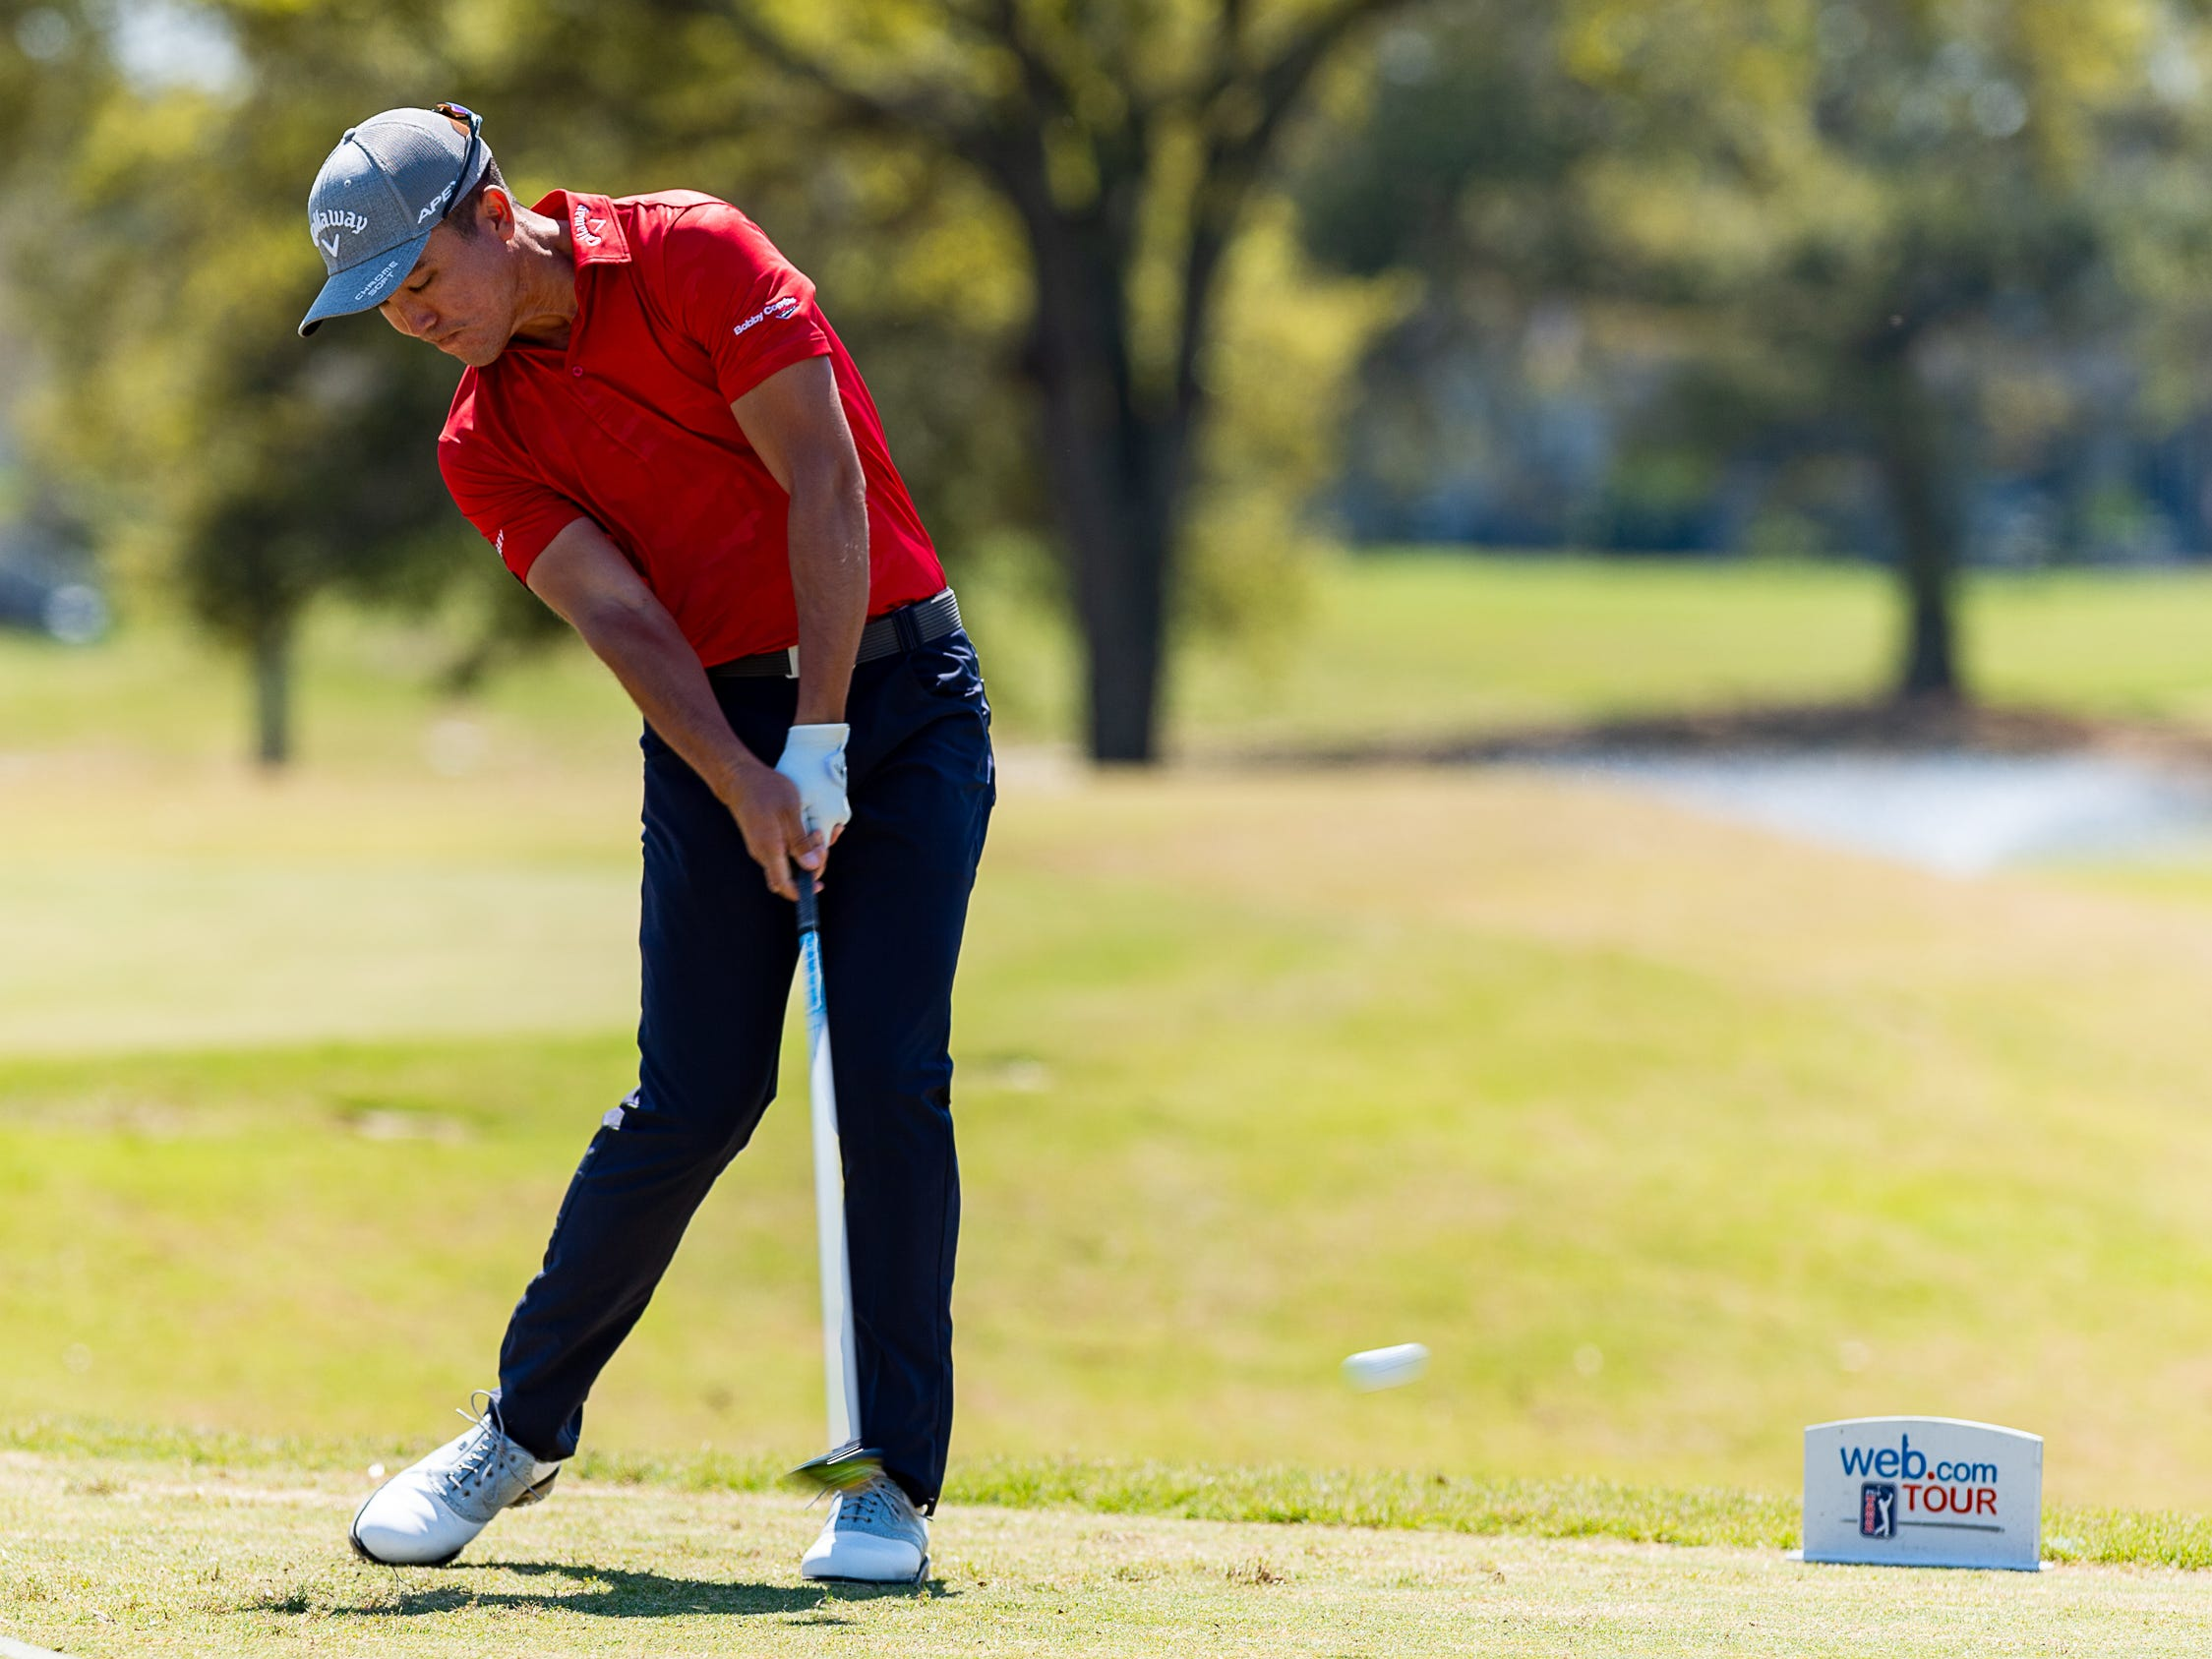 Byron Meth on the tee as The Web.com Tour is in Lafayette for the 2019 Chitimacha Louisiana Open at Le Triomphe. Friday, March 22, 2019.